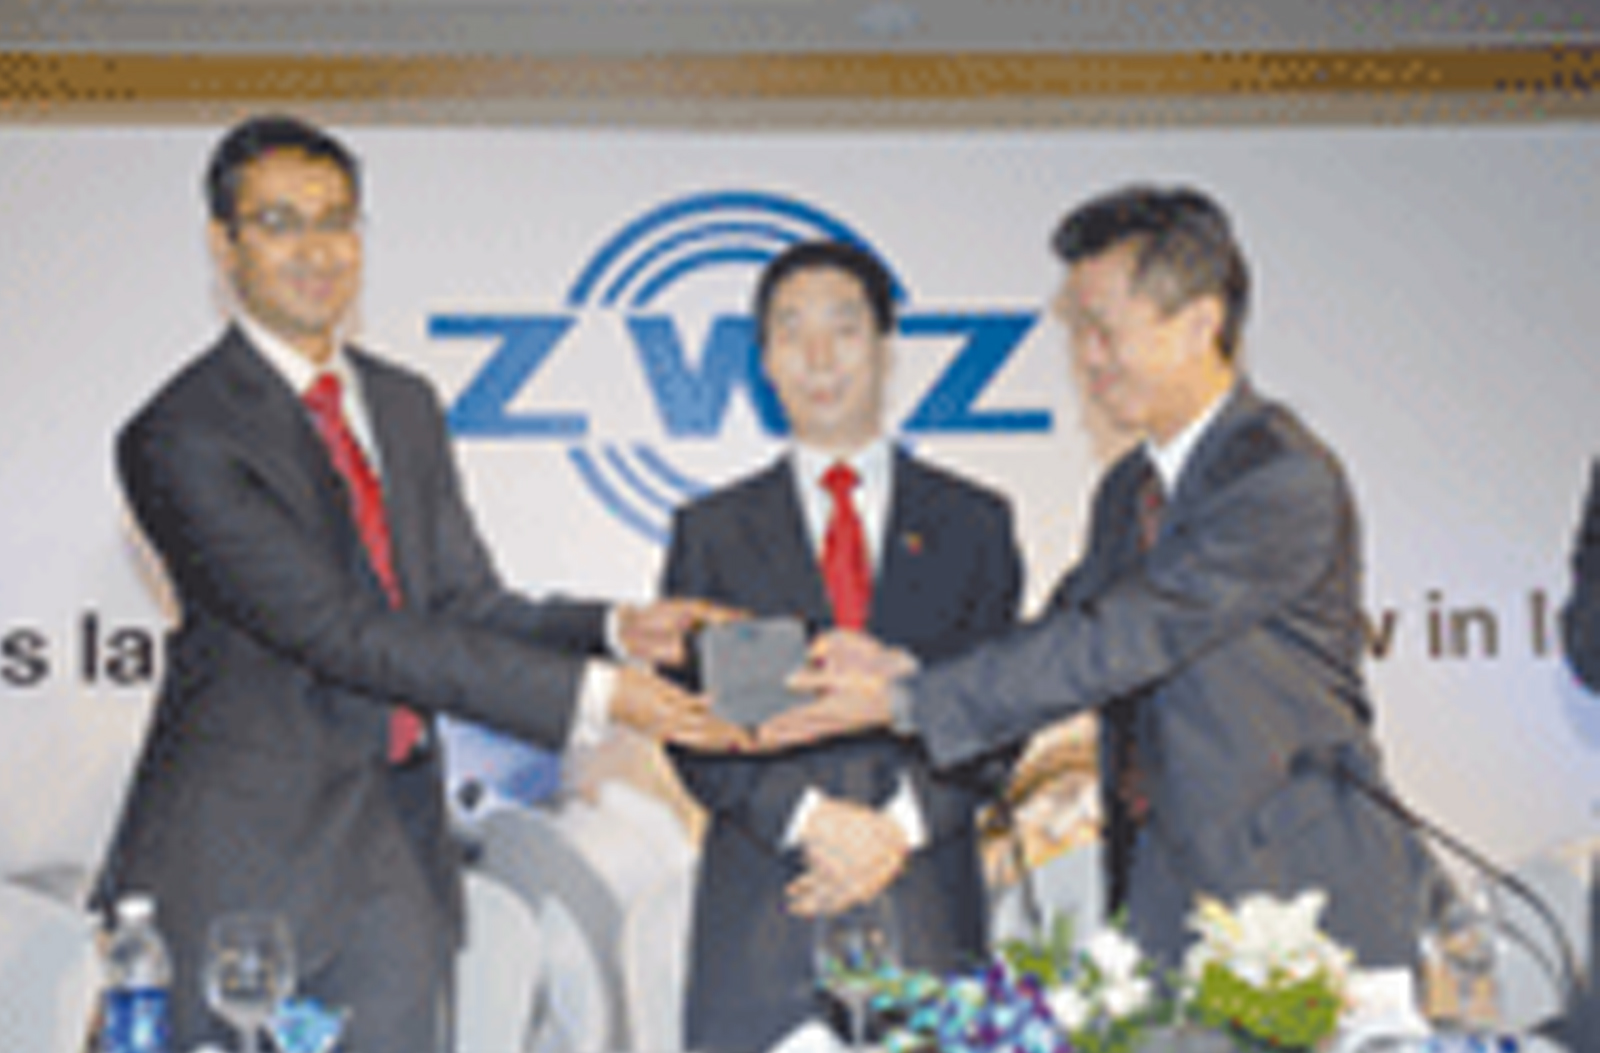 ZWZ Bearings to Commence India Operations